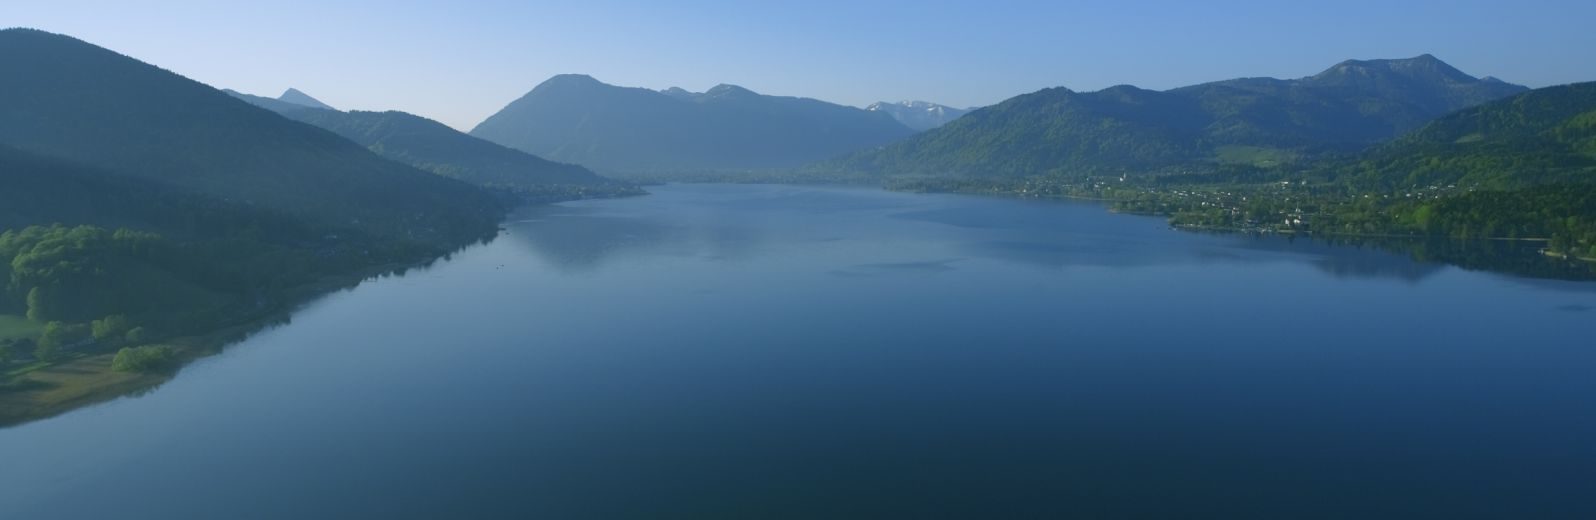 Tegernsee in the heart of Bavaria, Germany, a scenic landscape image of the lakes and alps.